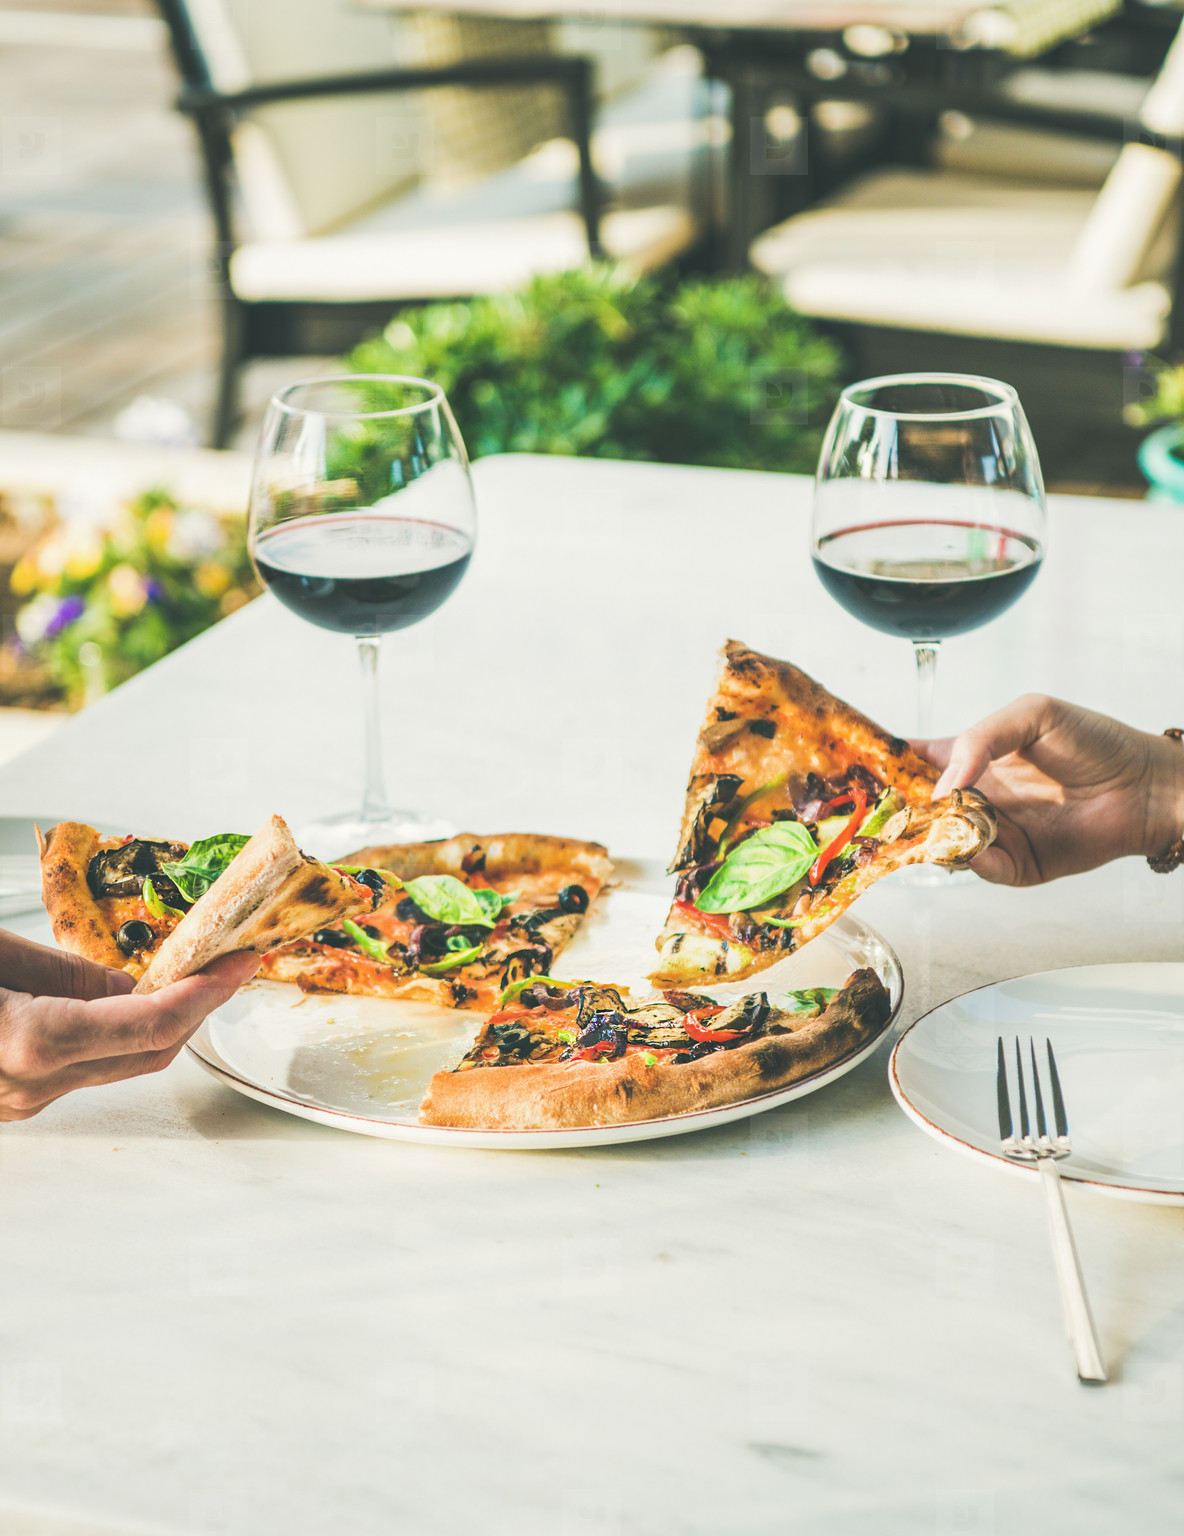 Summer dinner or lunch with pizza and wine